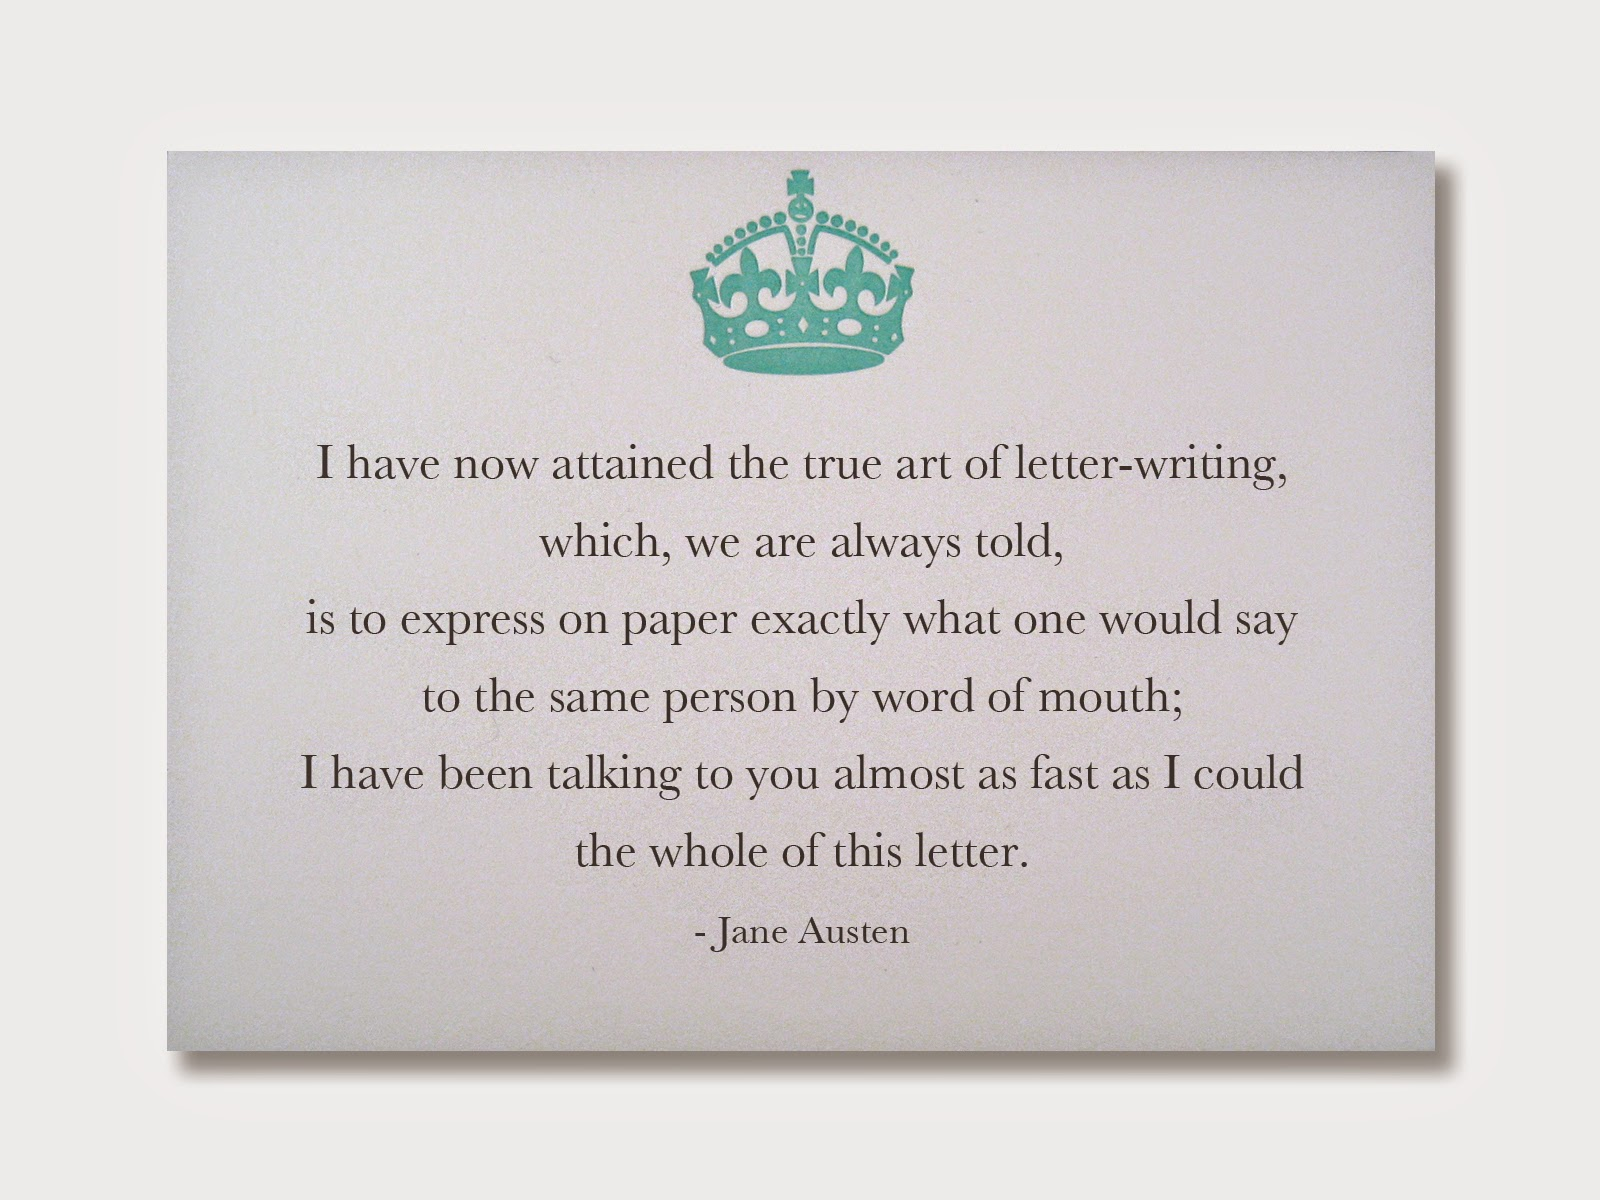 I have now attained the true art of letter-writing, which, we are always told, is to express on paper exactly what one would say to the same person by word of mouth; I have been talking to you almost as fast as I could the whole of this letter. - Jane Austen